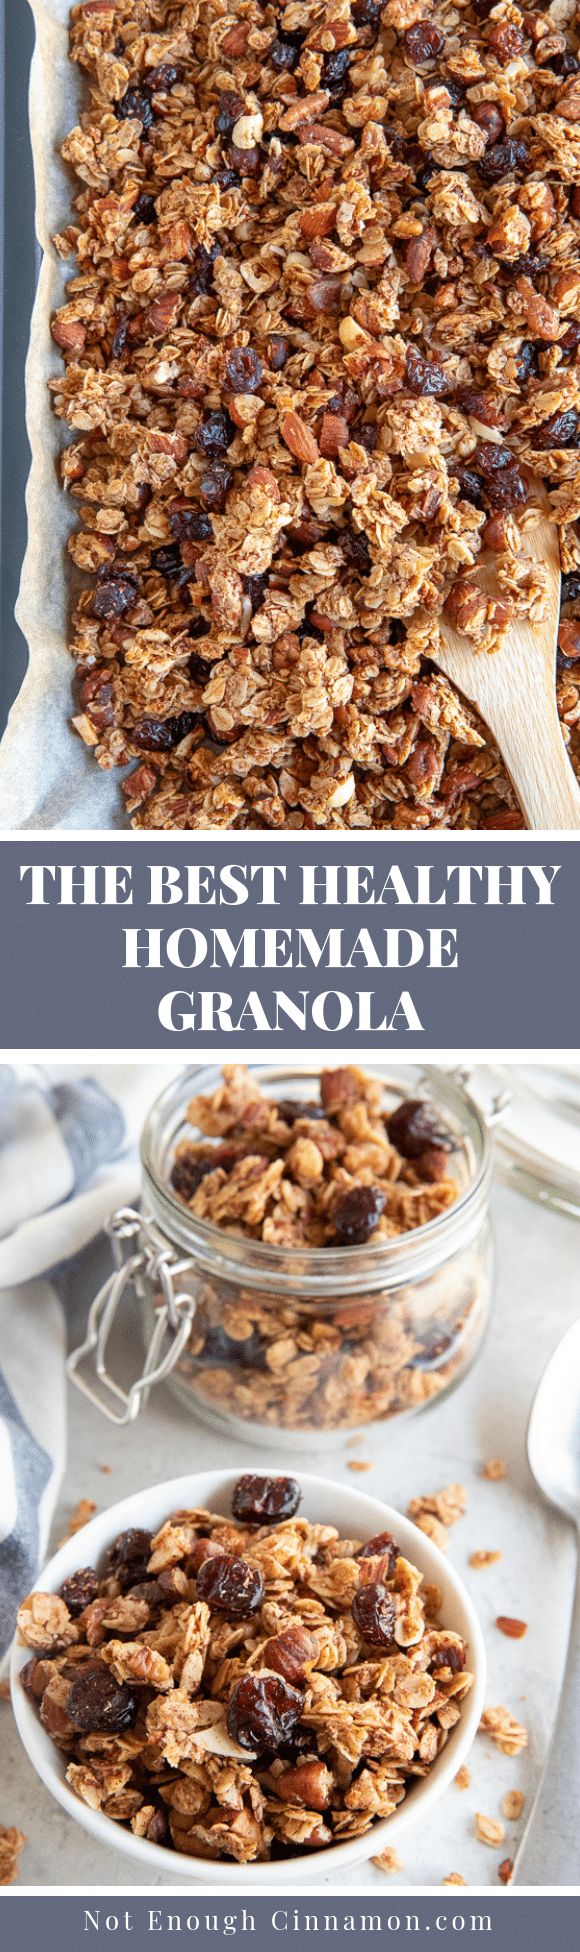 An Easy Recipe To Make The Best Homemade Healthy Granola It S Much Cheaper Than Store Bought Natural In 2020 Homemade Granola Healthy Granola Healthy Granola Recipes